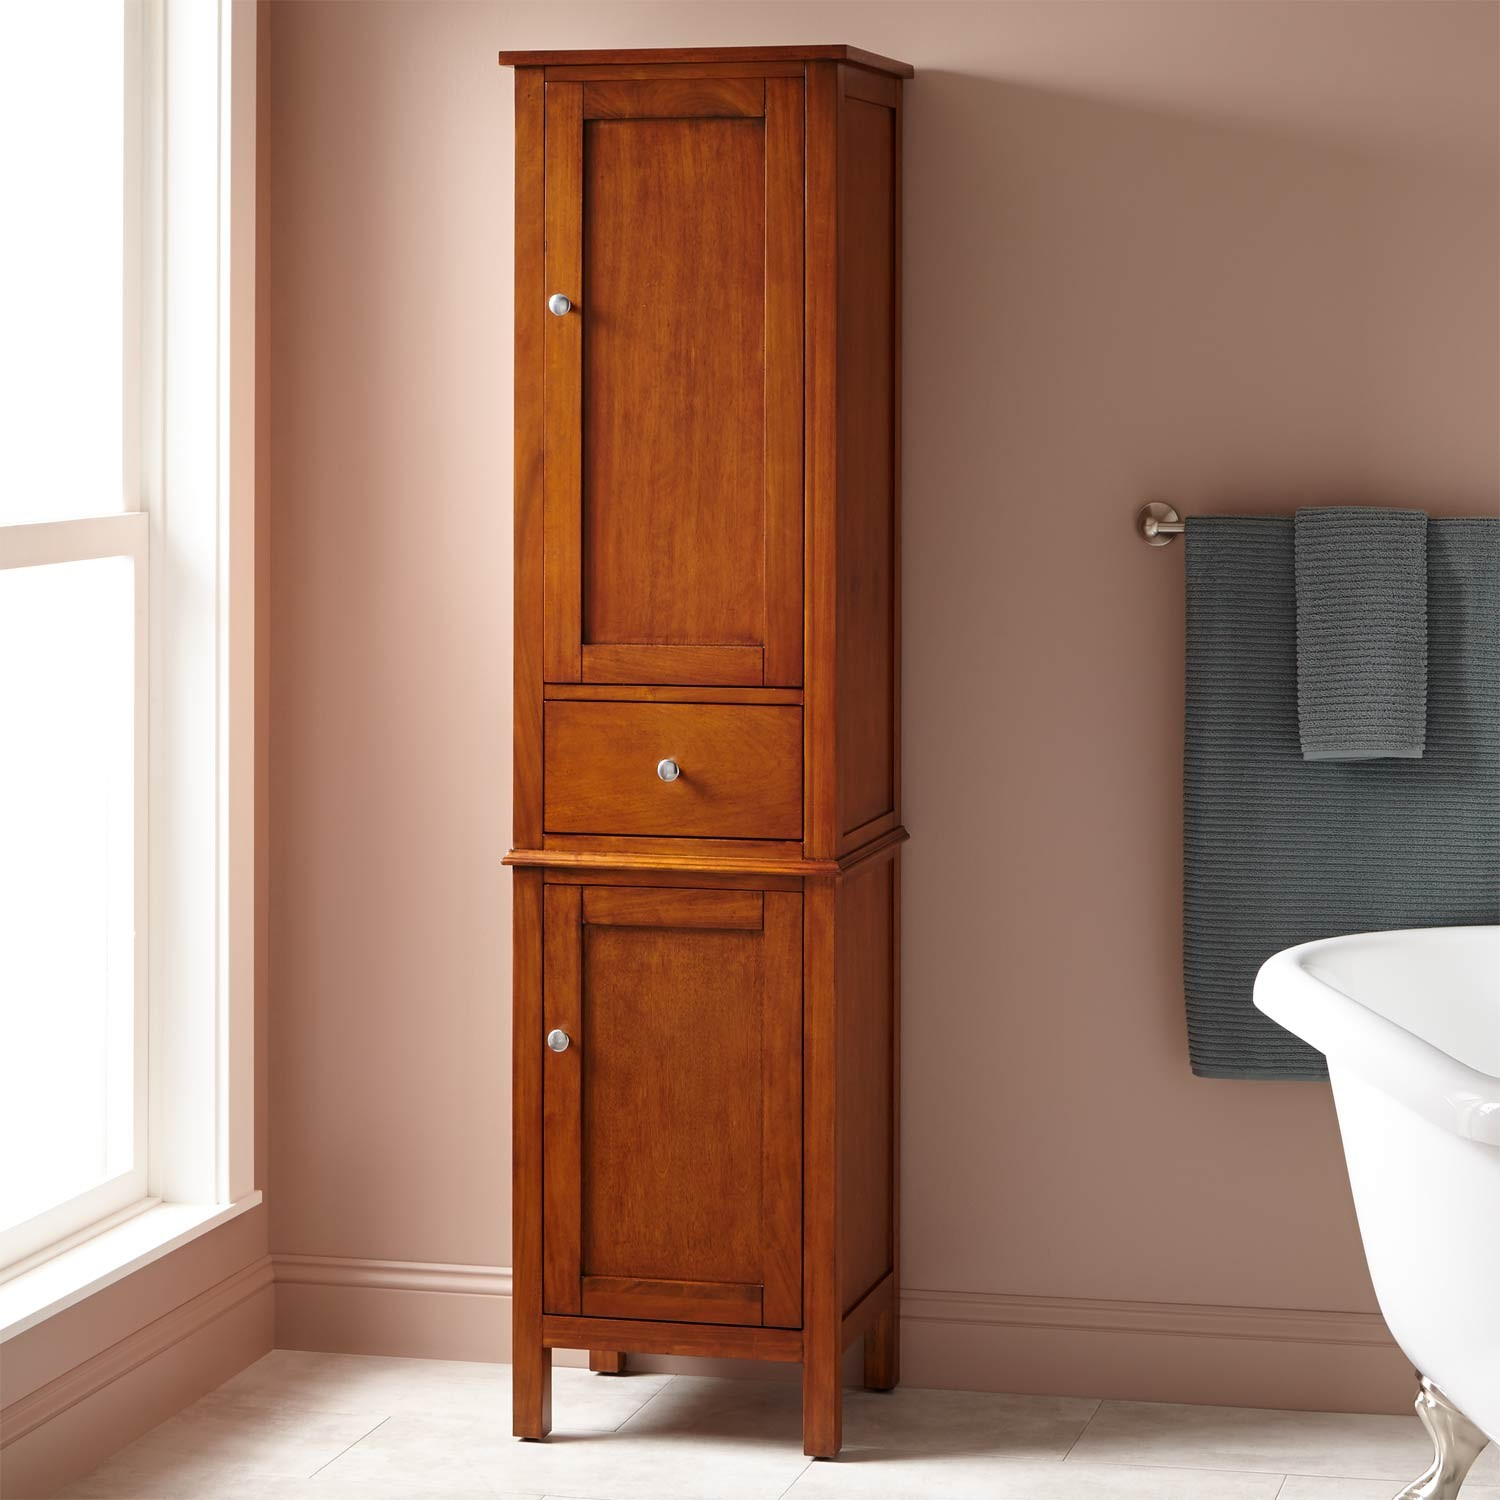 free standing linen cabinets for bathroom luxurious bathroom best linen storage cabinet oak cabinets of wood HAJEJDX